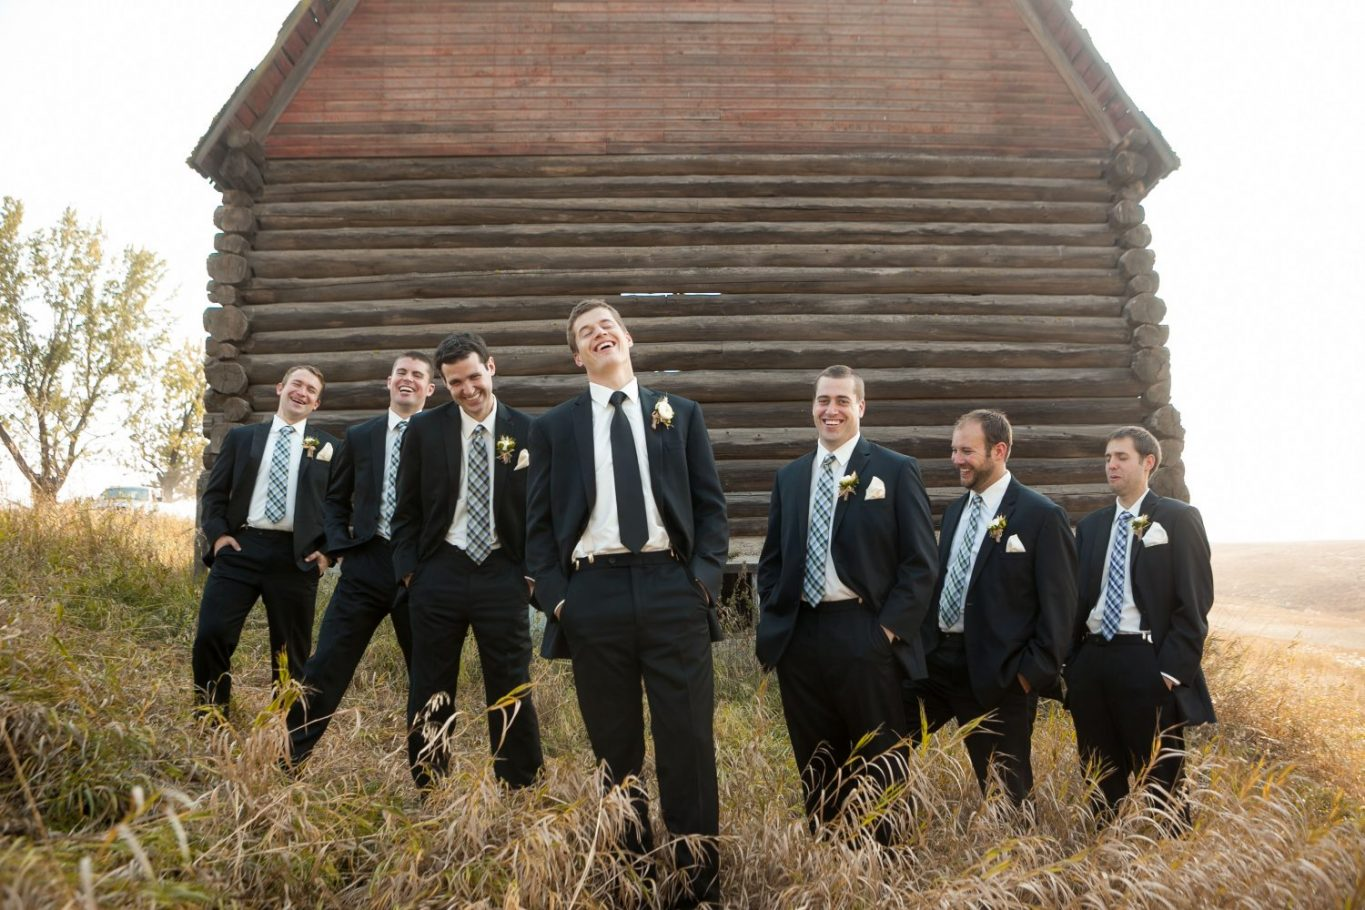 groomsmen-portrait-with-barn-black-suits